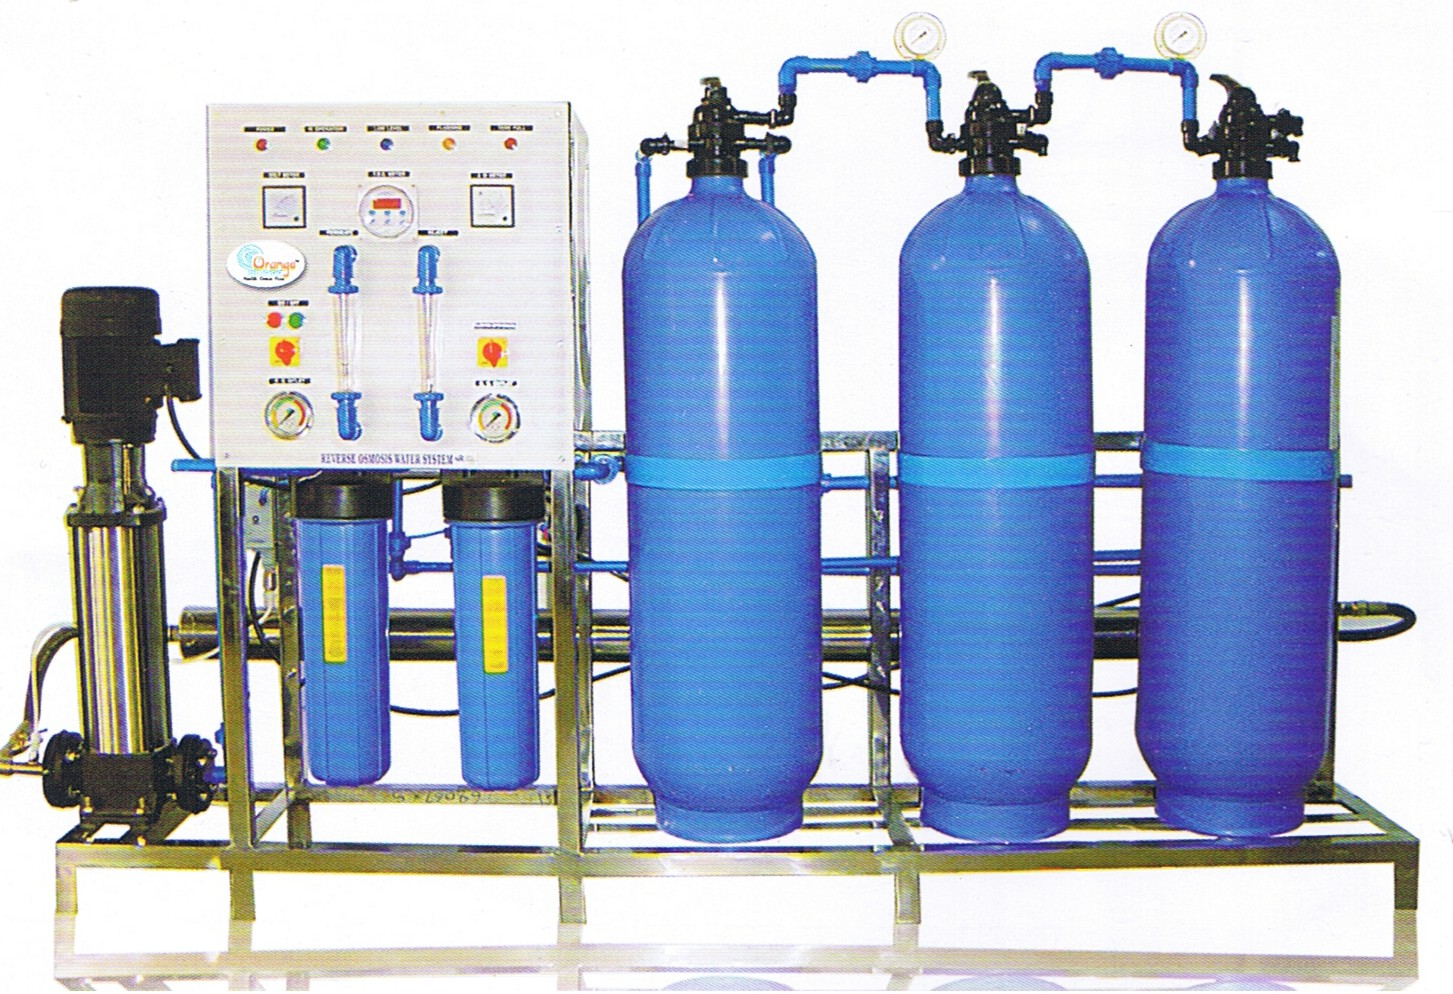 Commerfcial Water Treatment Plant - Small Scale